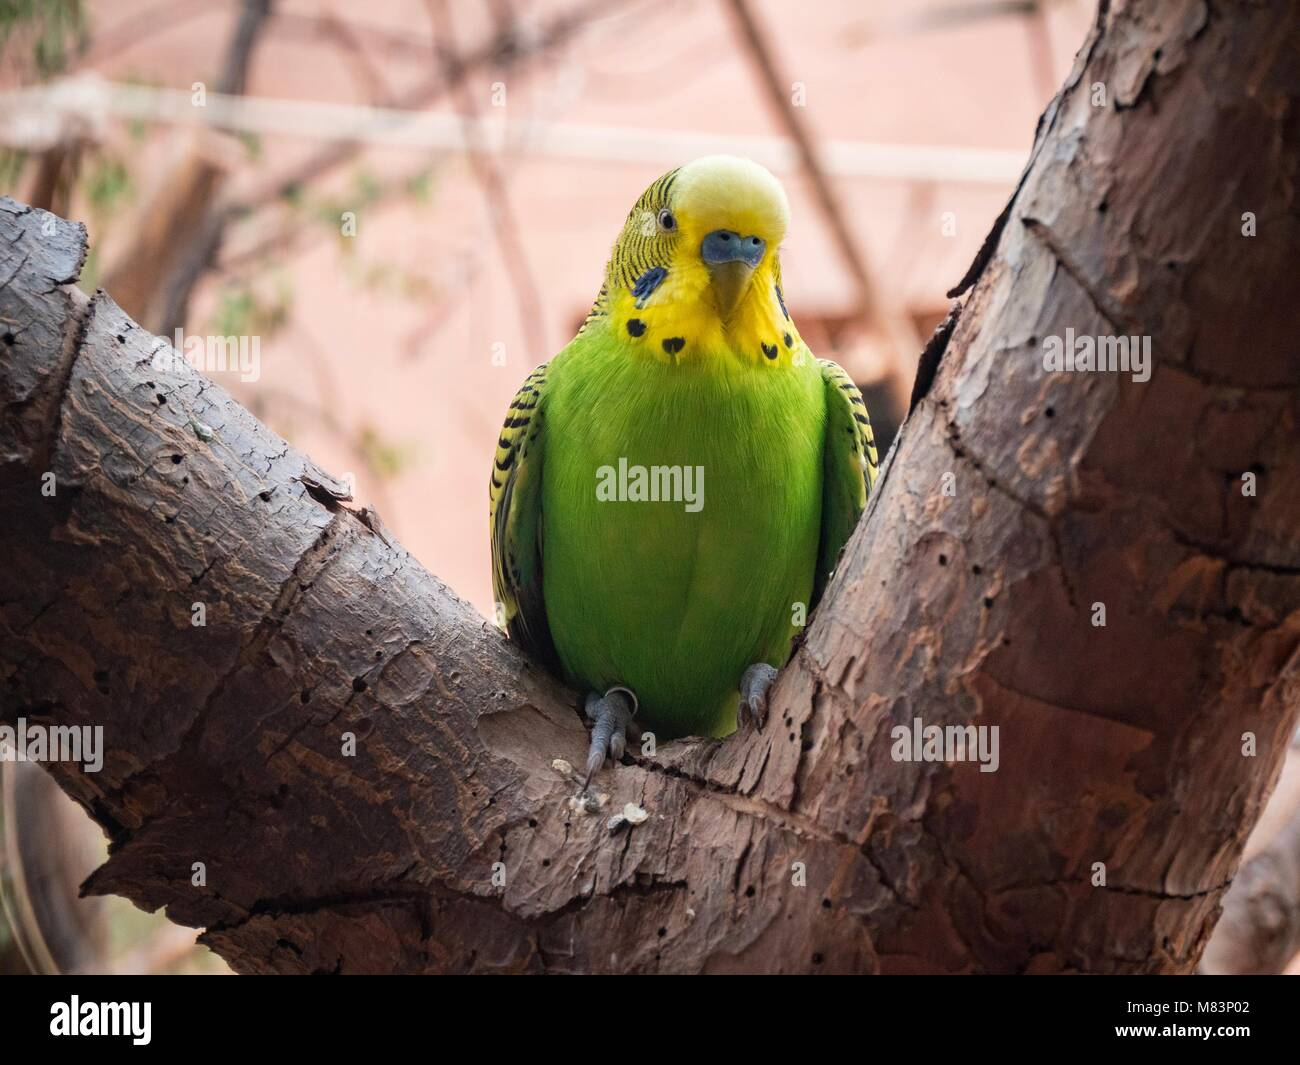 little budgie - Stock Image